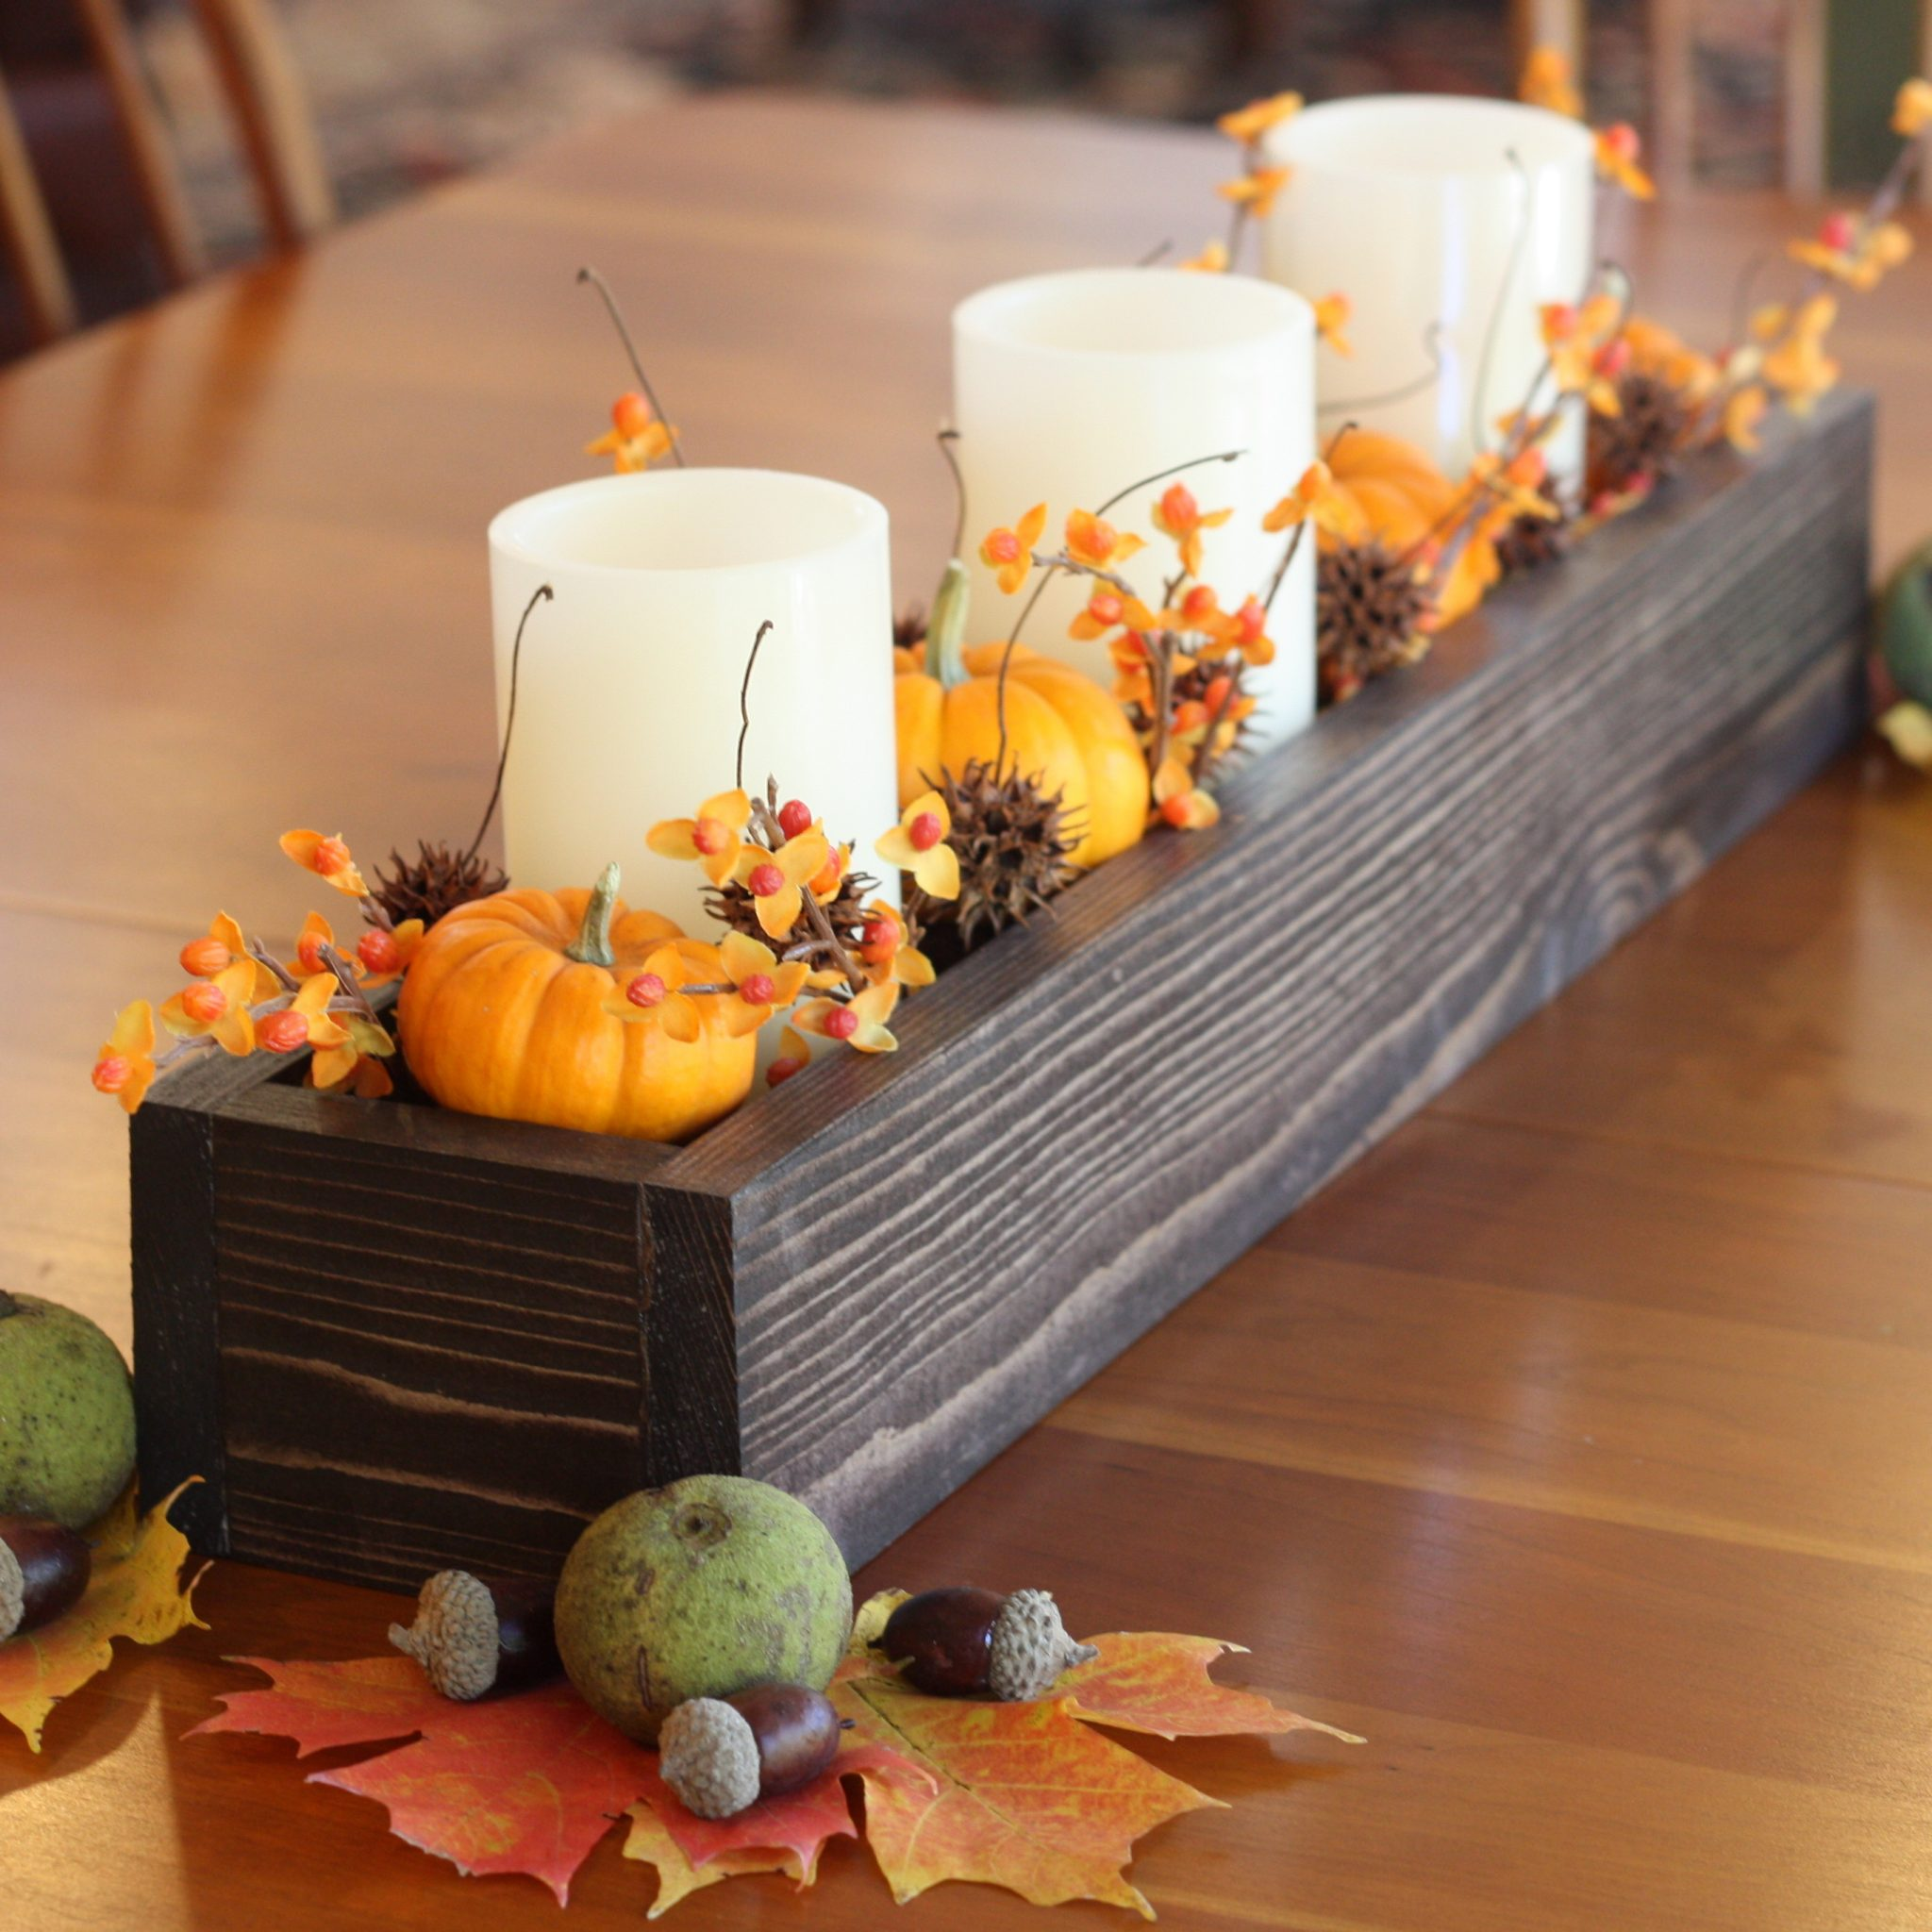 How to Make a Wood Box Centerpiece